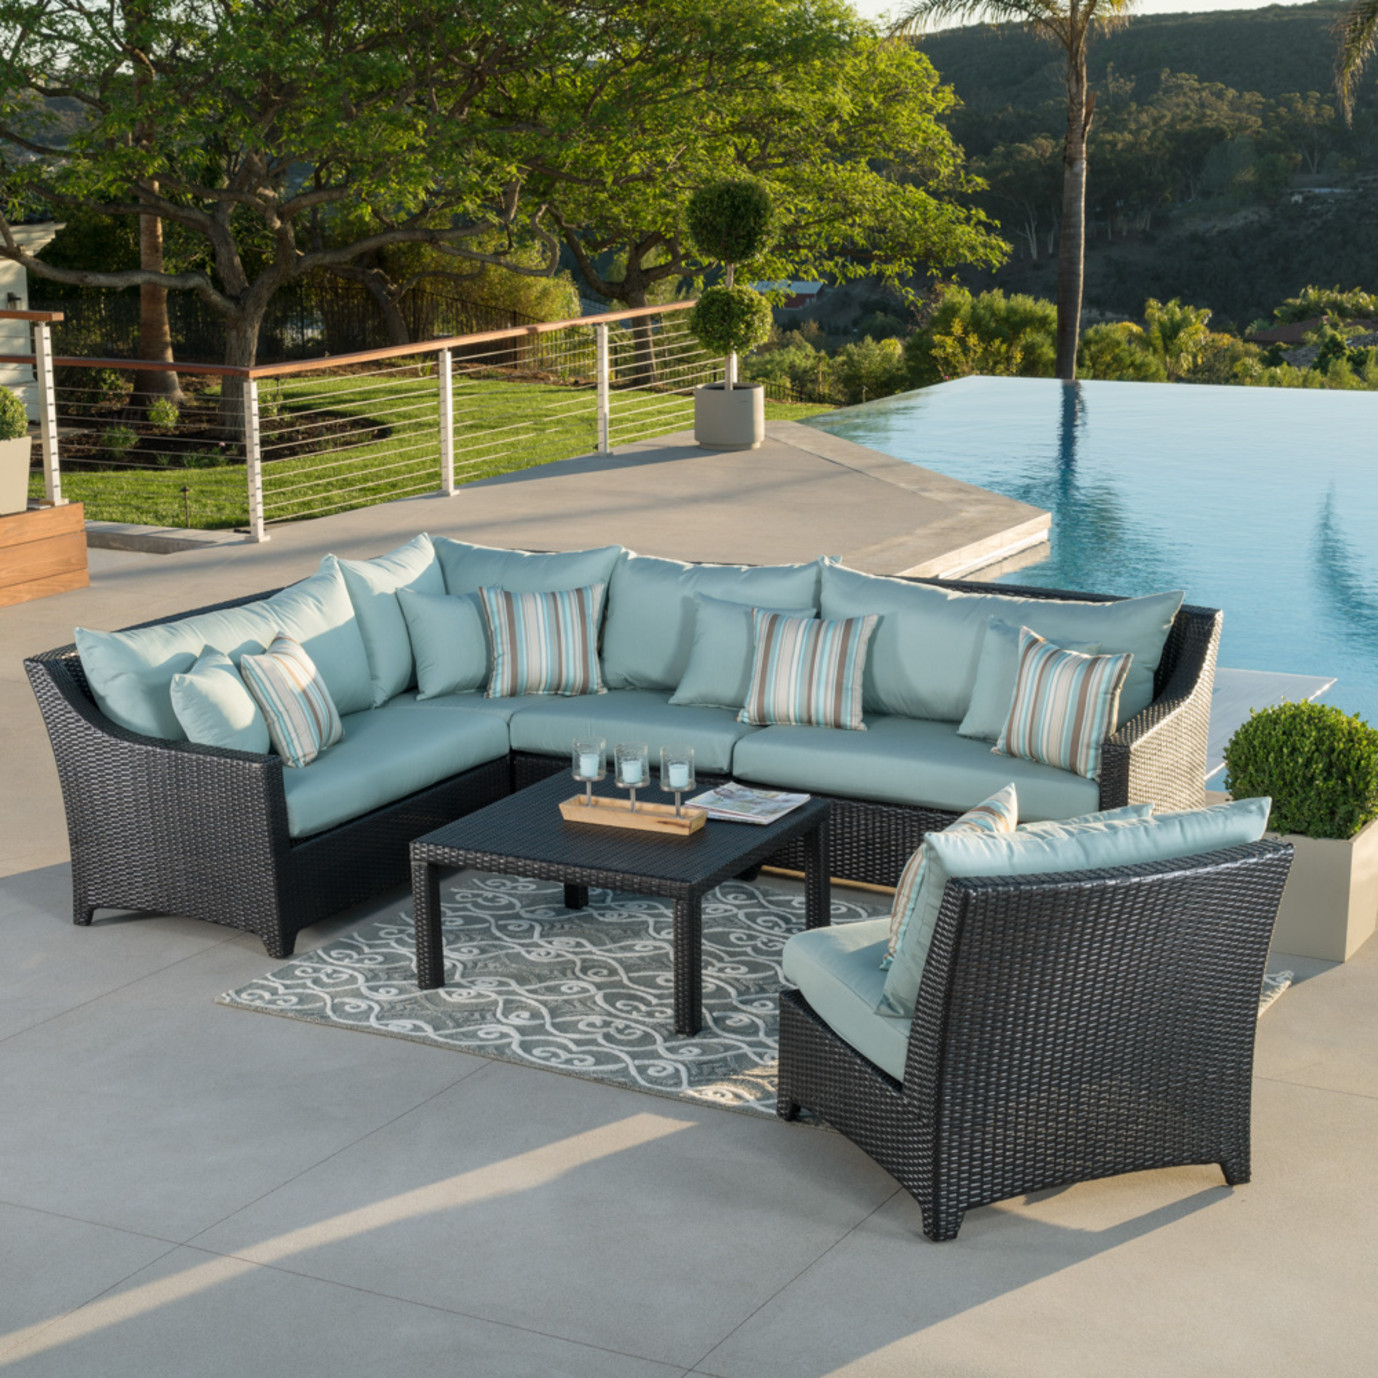 Deco™ 6pc Sectional and Table - Bliss Blue